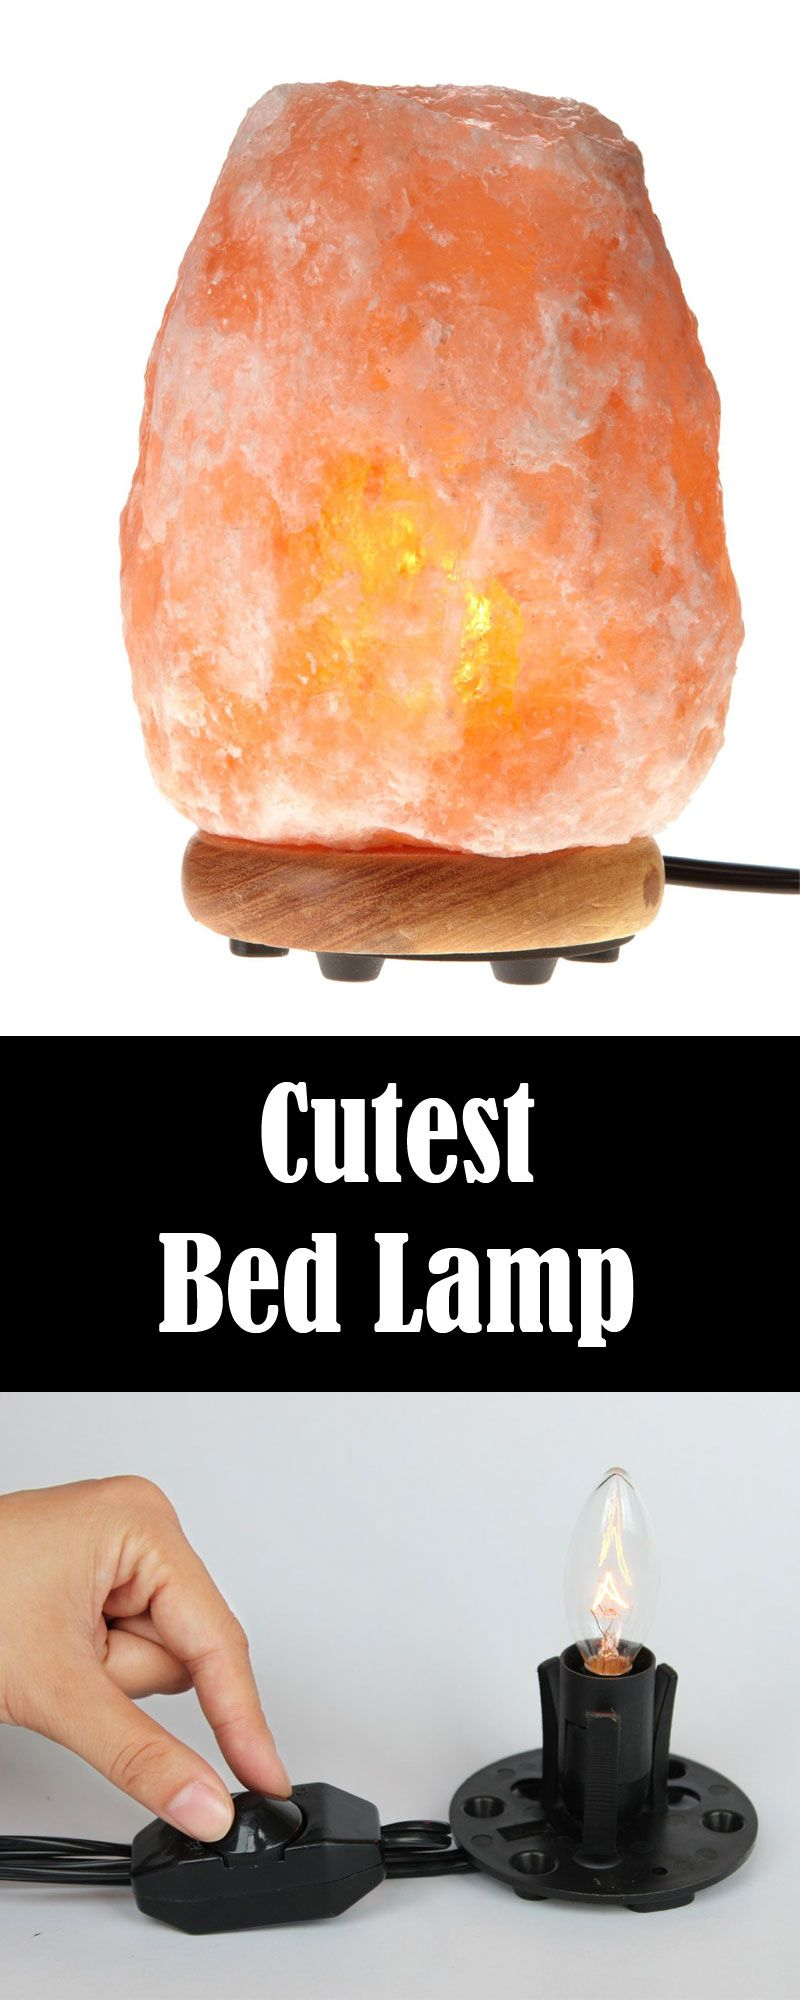 Wbm Salt Lamp New Wbm Himalayan Lightnatural Air Purifying Himalayan Salt Lamp With Design Ideas